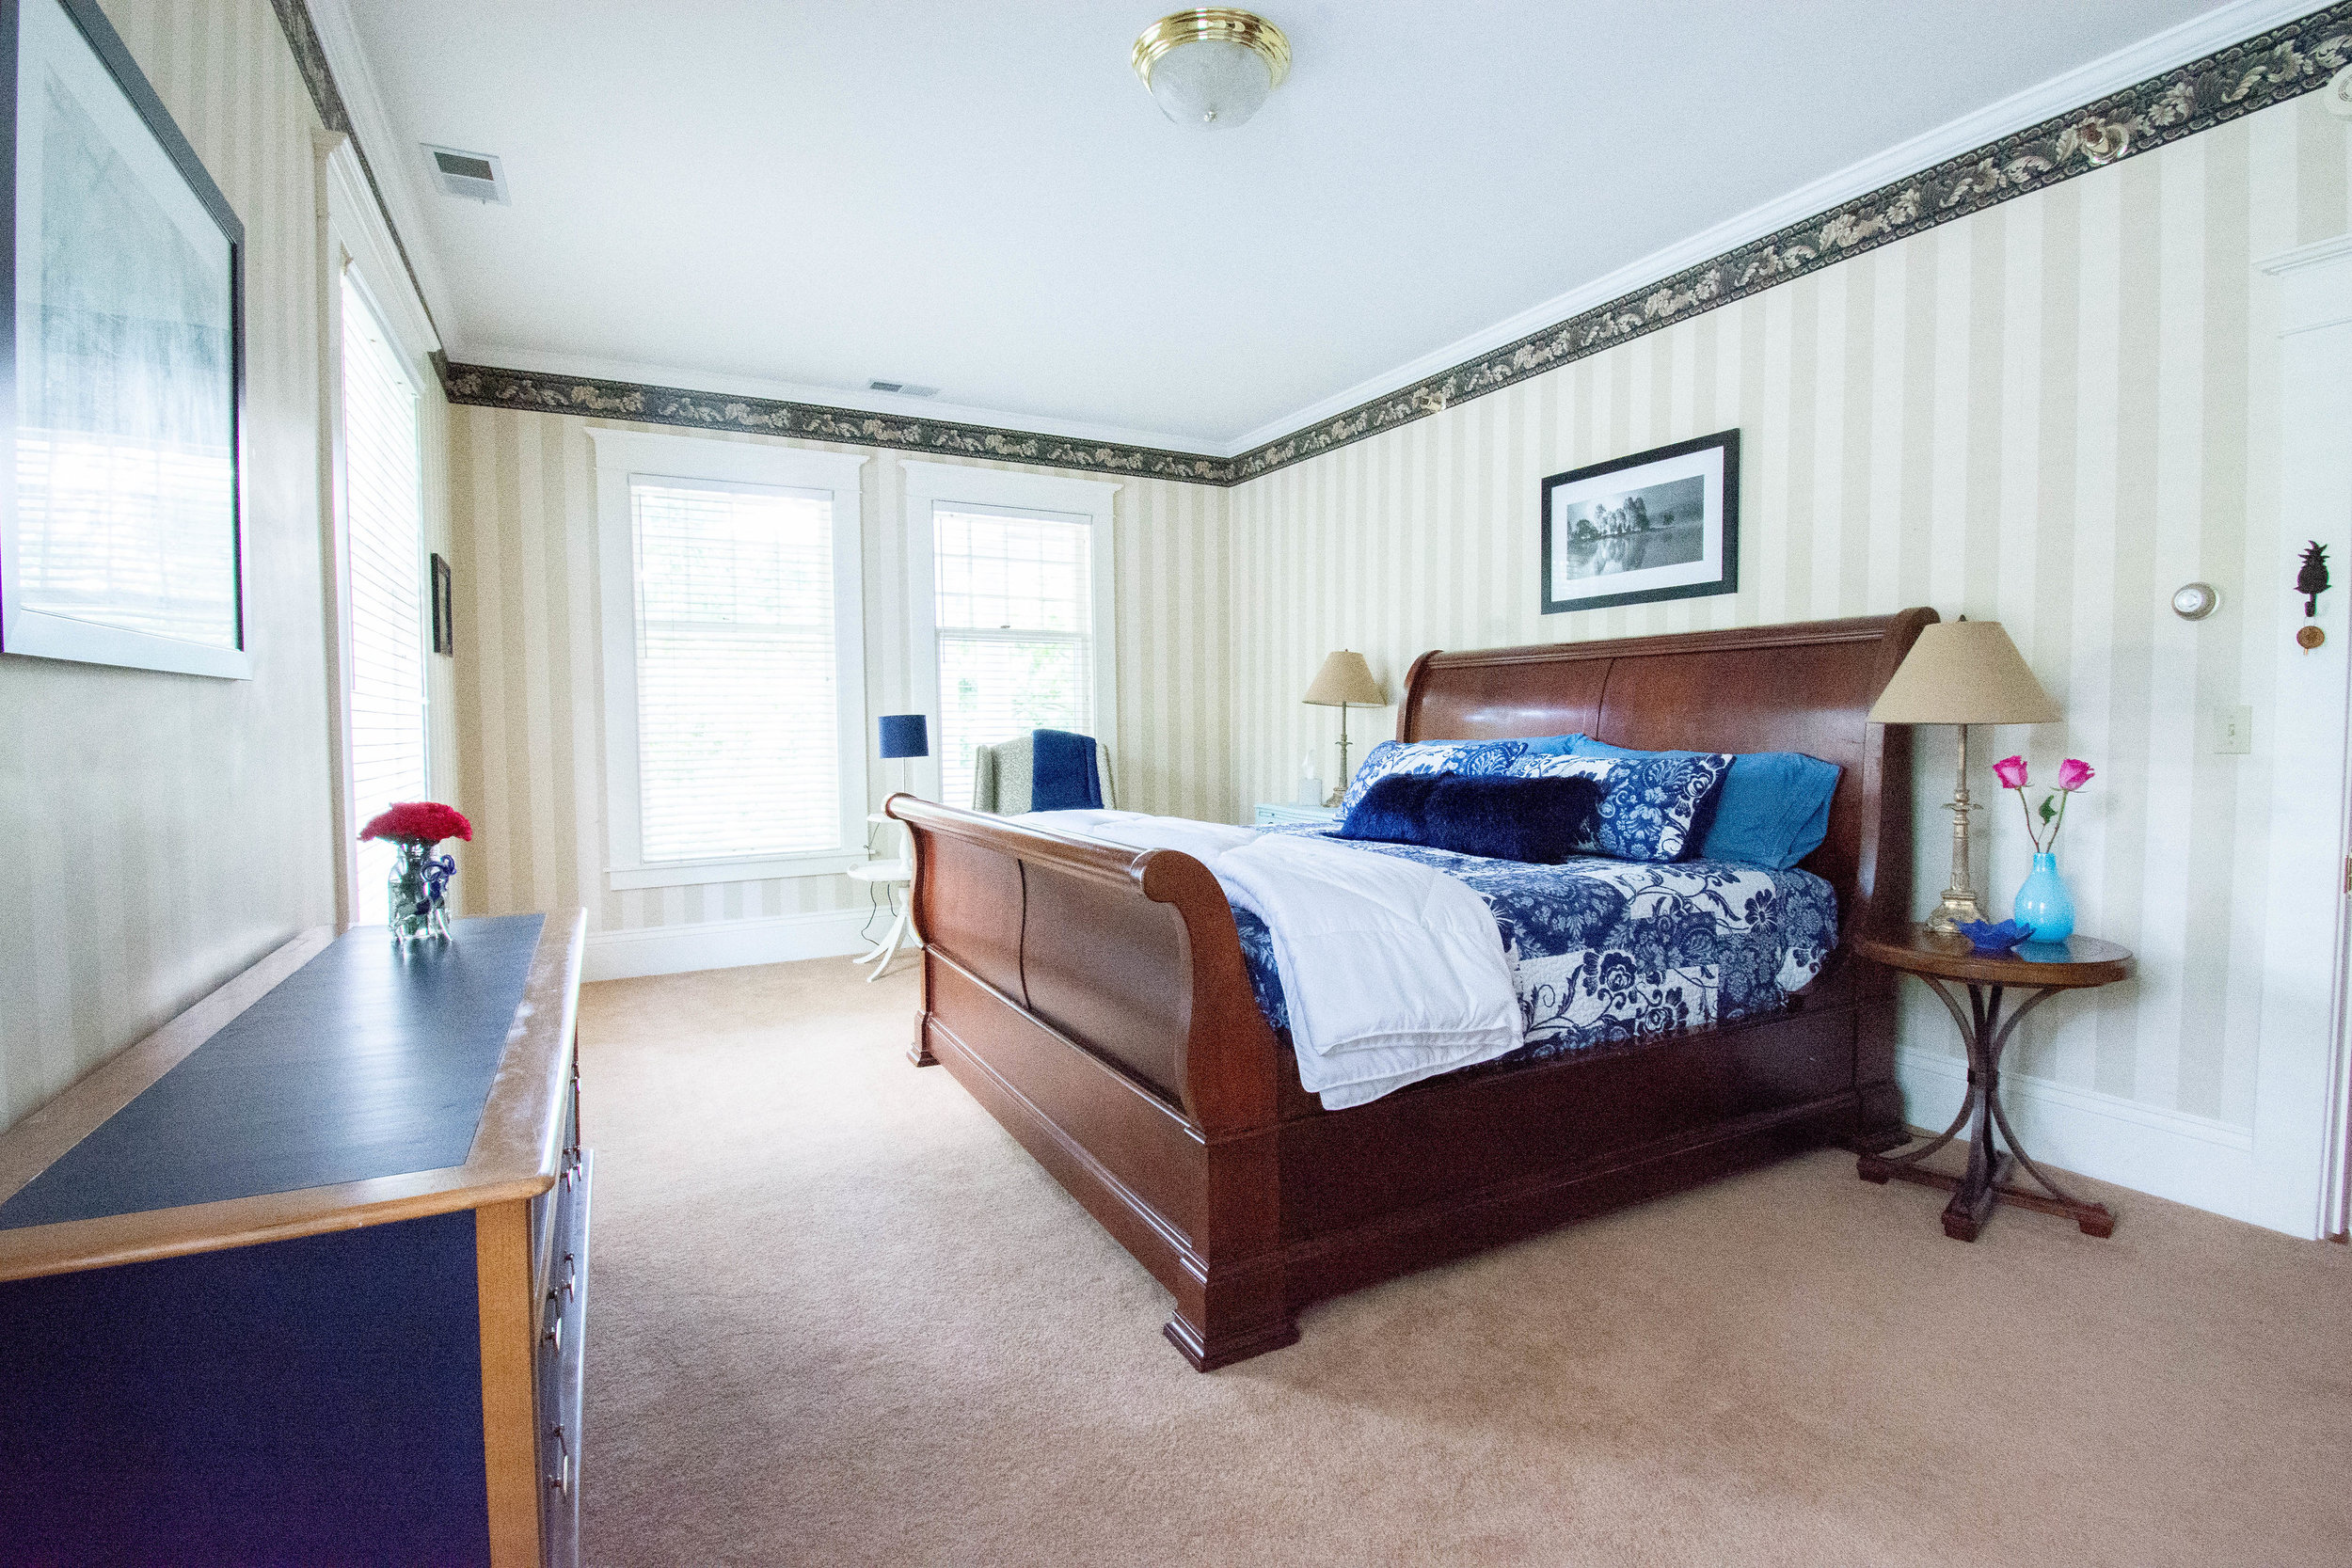 "<img alt= ""full room view of room from right side of bed including dresser and nightstand"" />"